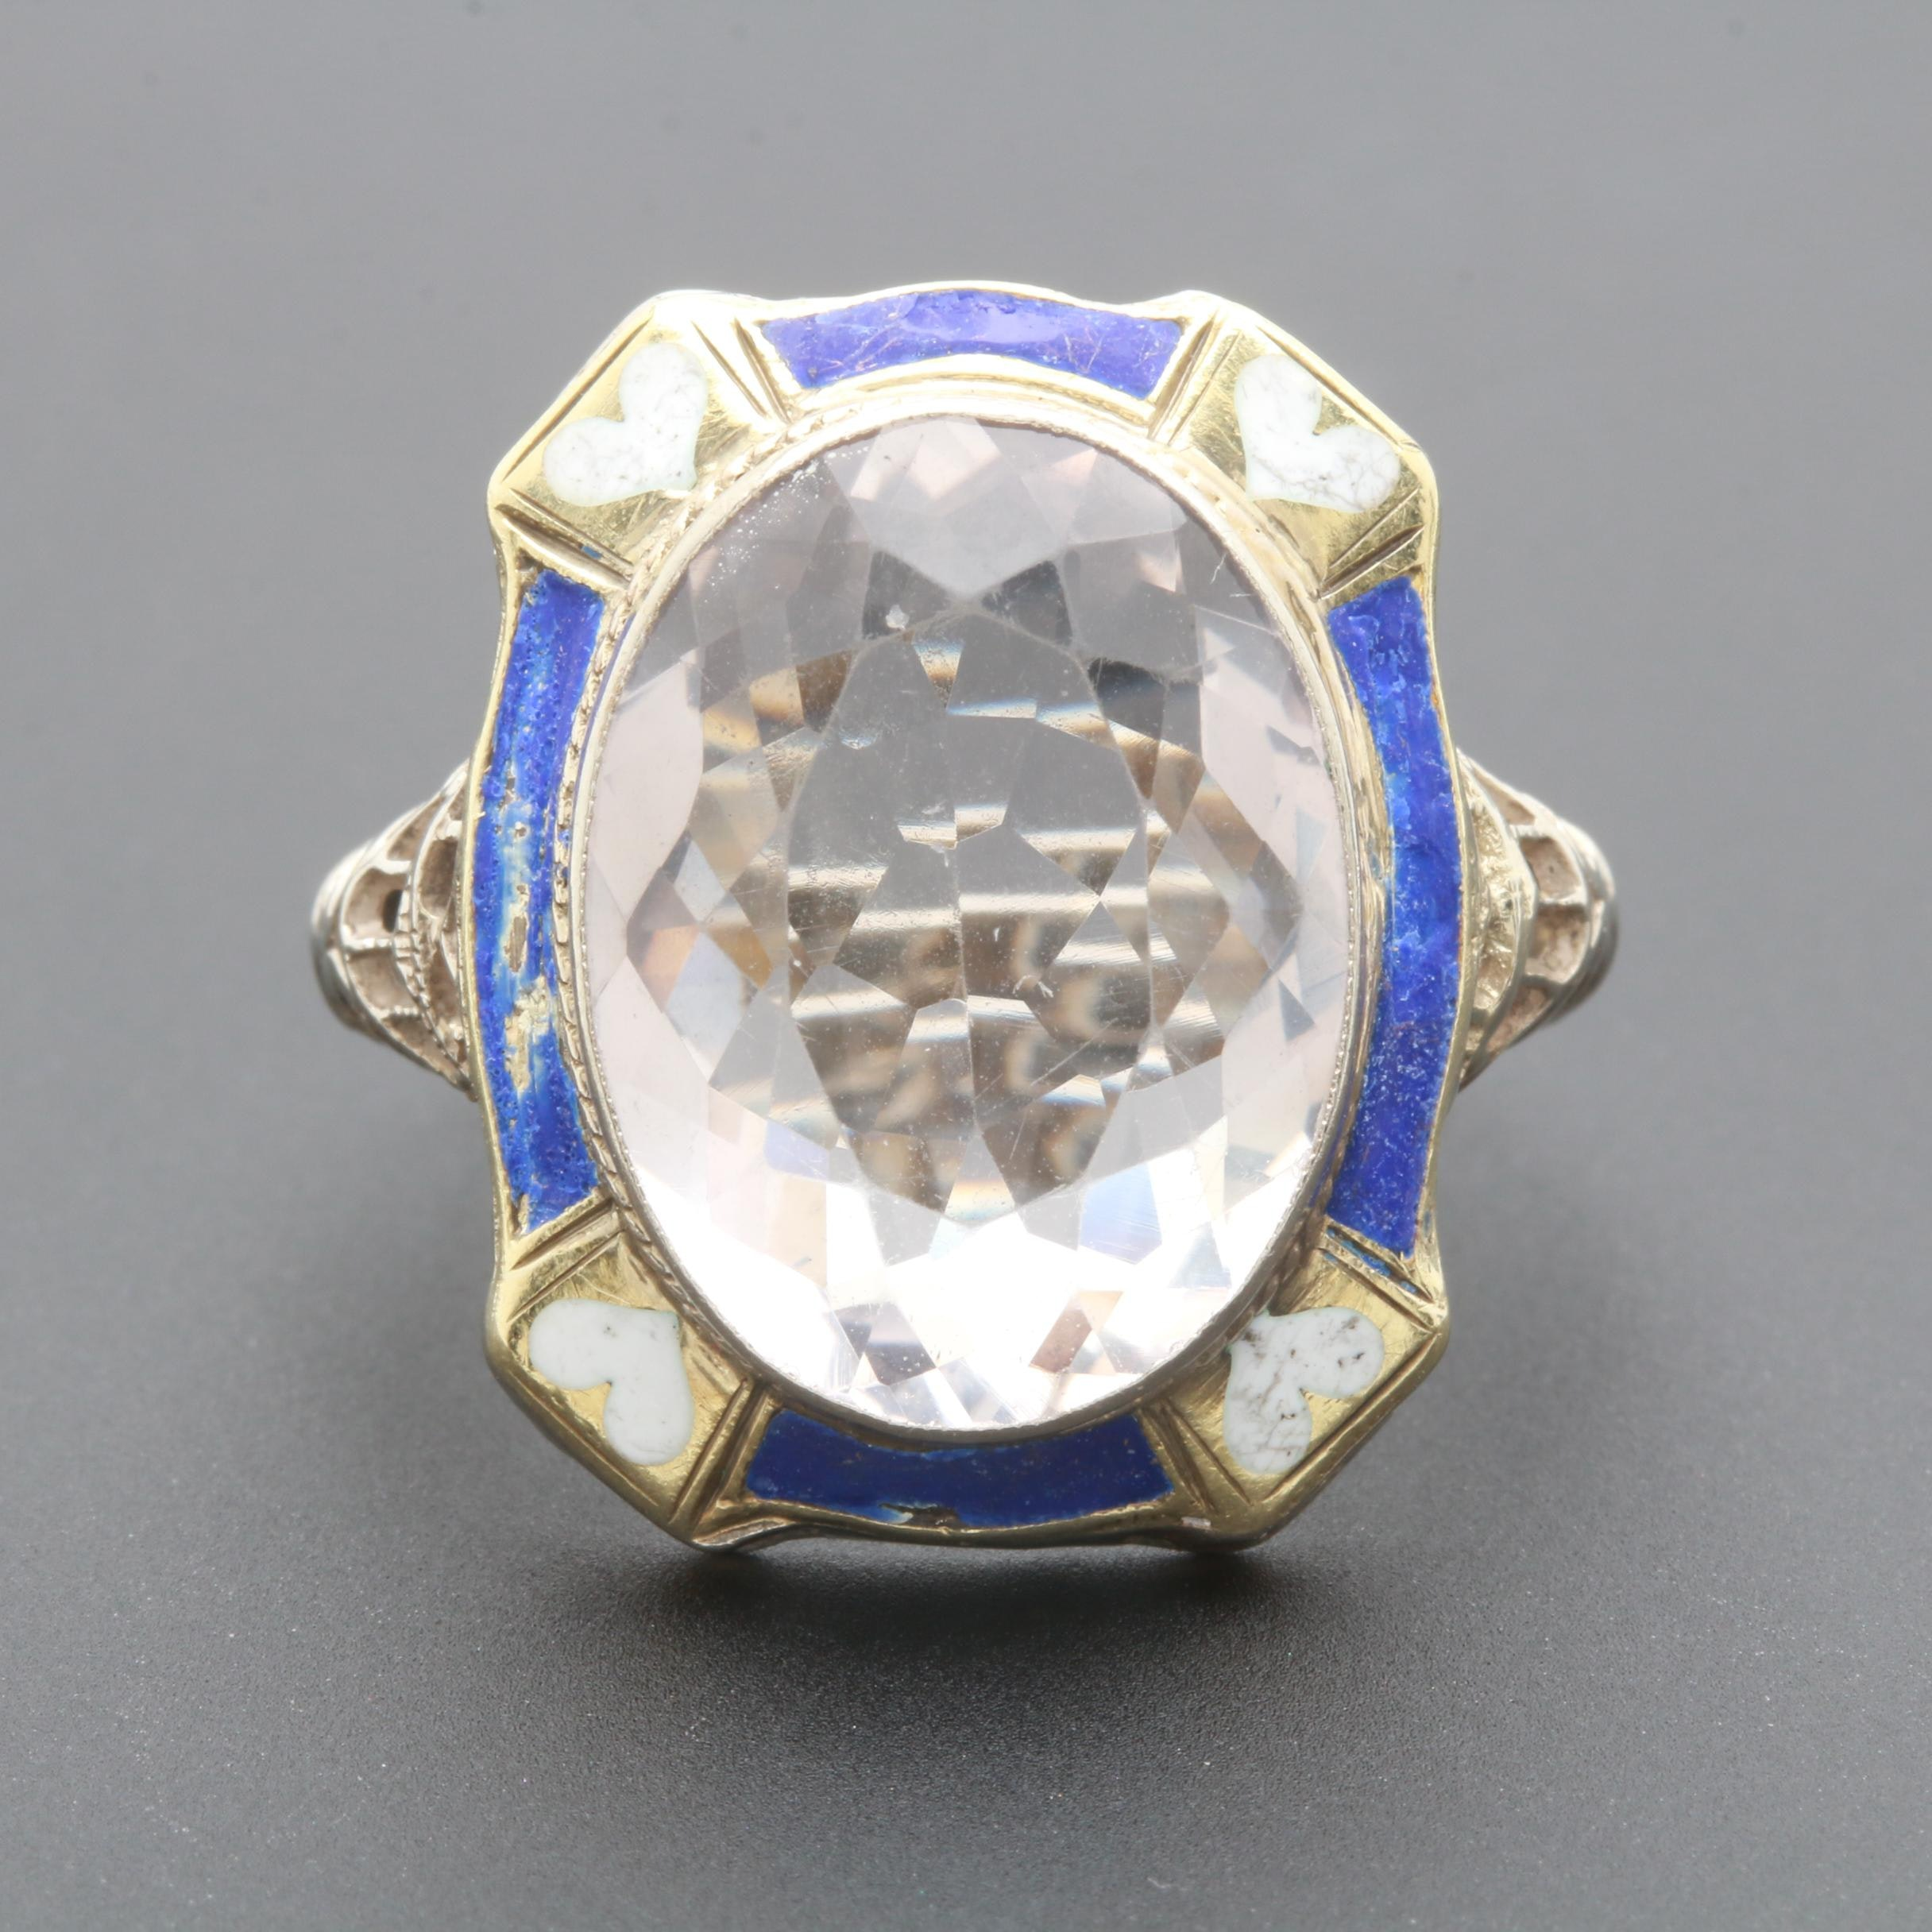 Circa 1930s 14K White Gold Clear Quartz and Enamel Ring